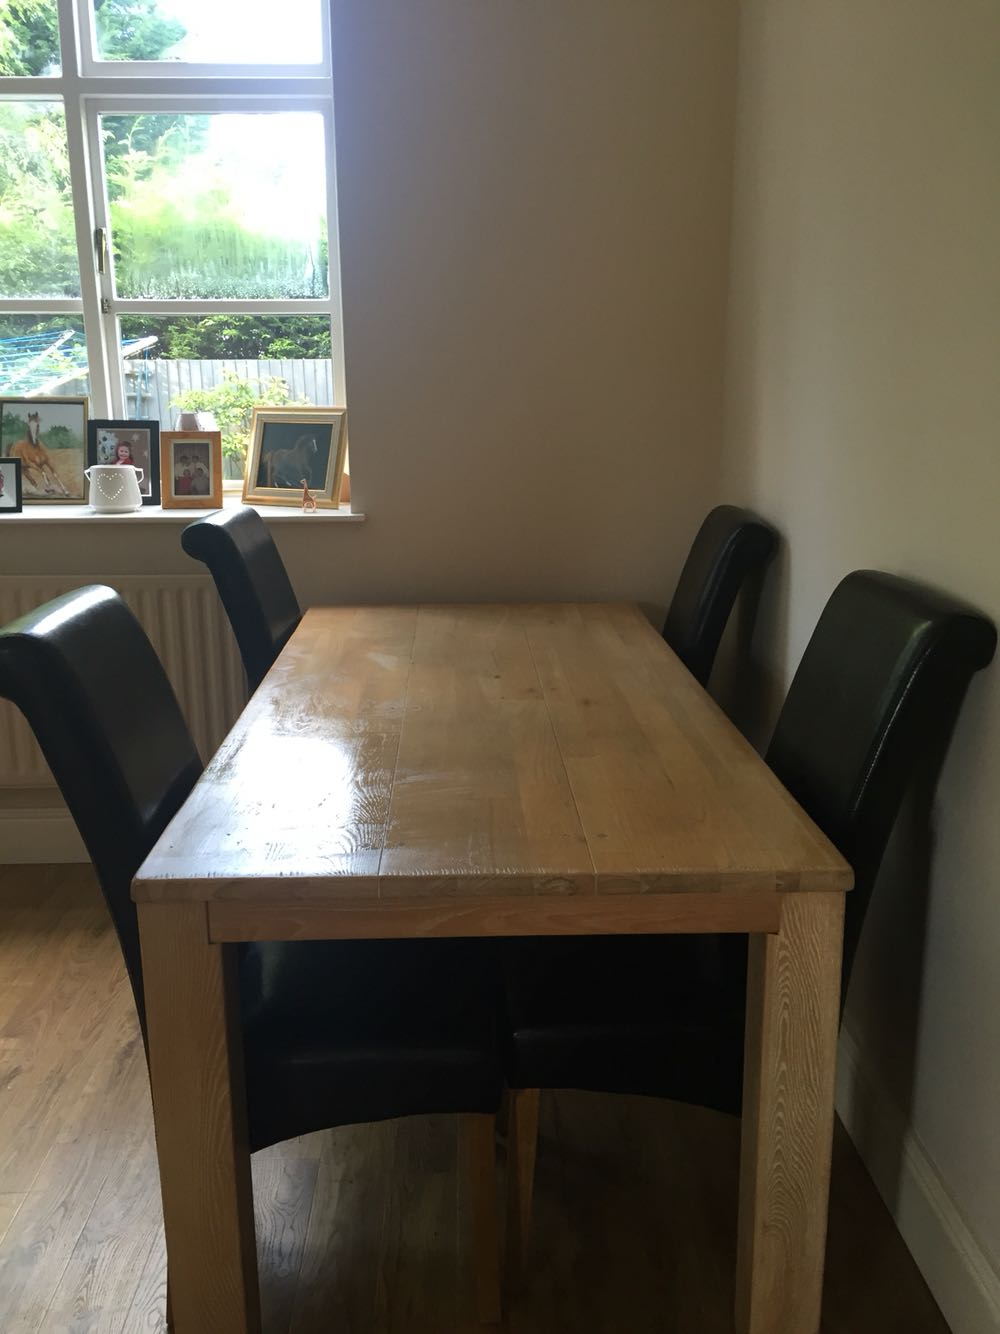 Limed Oak for sale in UK 165 second hand Limed Oaks : c2638c880dd54dd9b066c8210c9a43f4 from www.for-sale.co.uk size 1000 x 1334 jpeg 93kB